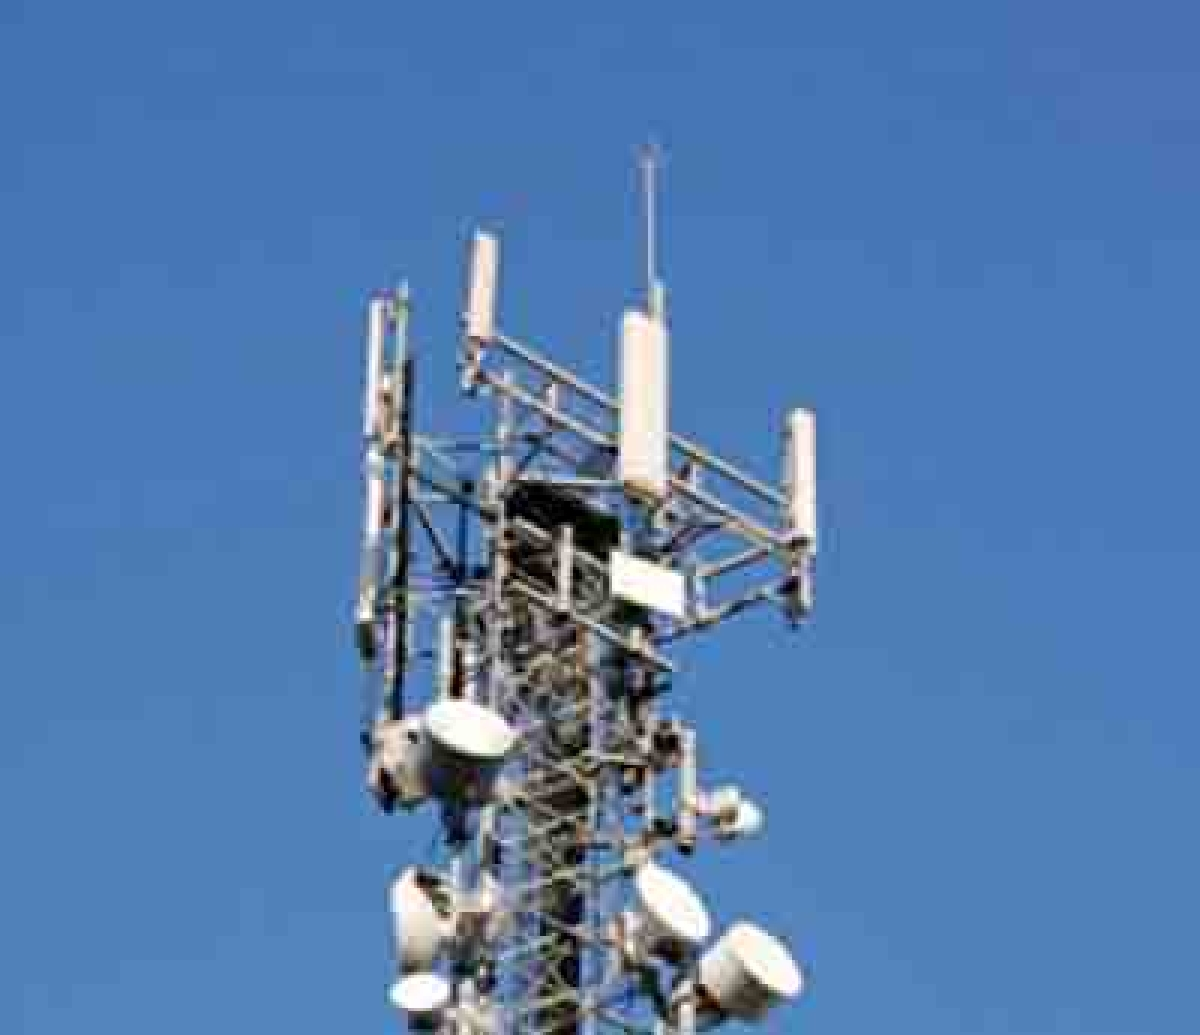 Govt buildings to allow mobile towers